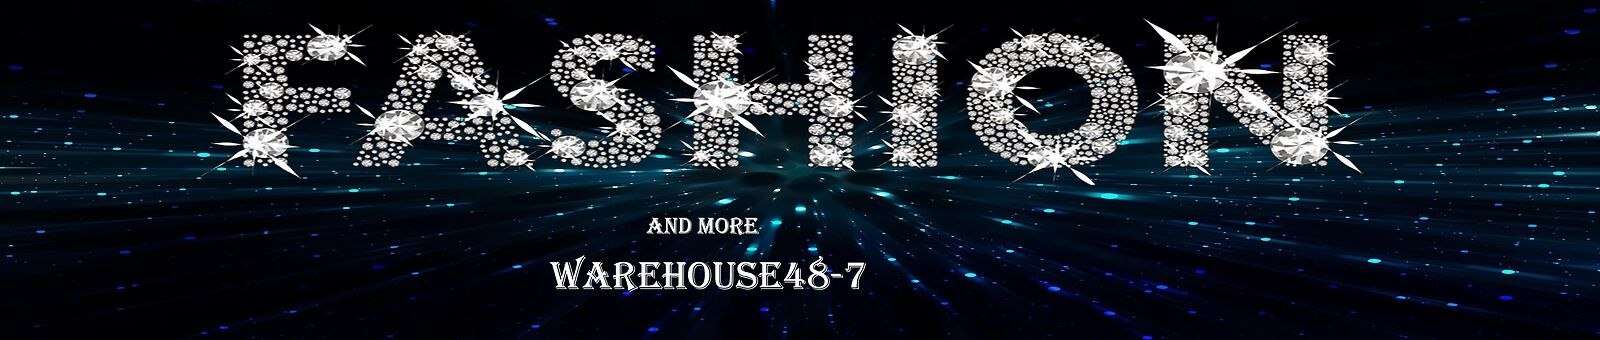 Warehouse48-7